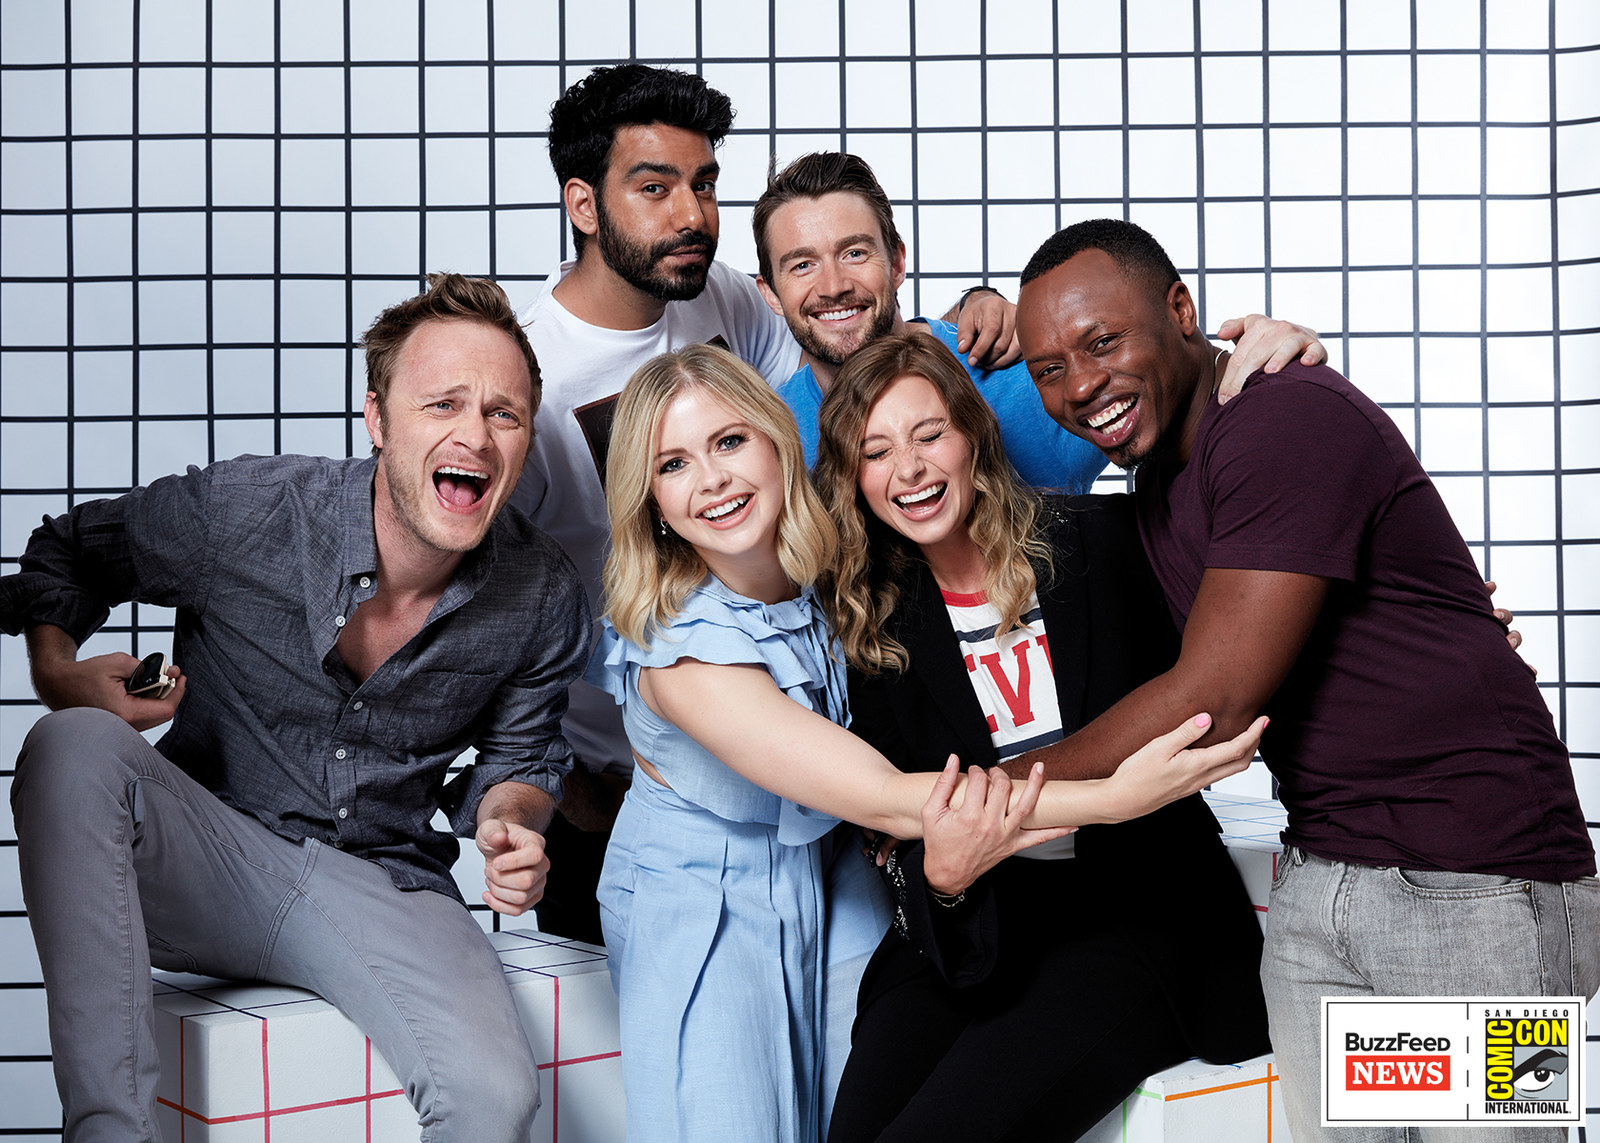 iZombie<br /><br />David Anders, Rahul Kohli, Rose McIver, Aly Michalka, Robert Buckley és Malcolm Goodwin.